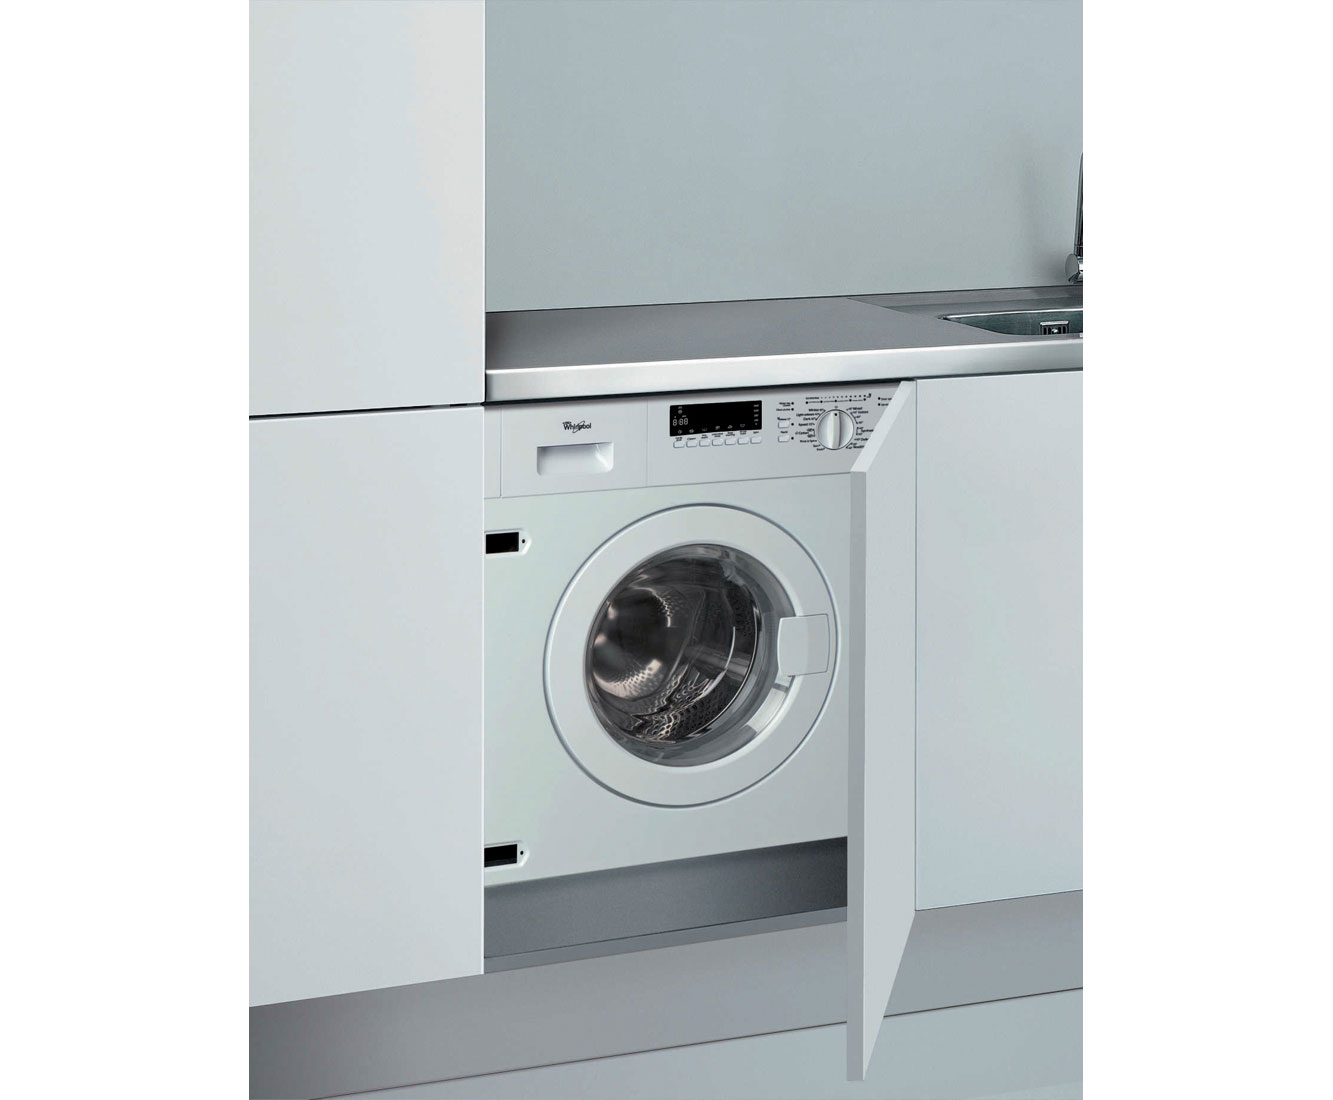 Whirlpool AWO/C7714 Integrated 7Kg Washing Machine with 1400 rpm